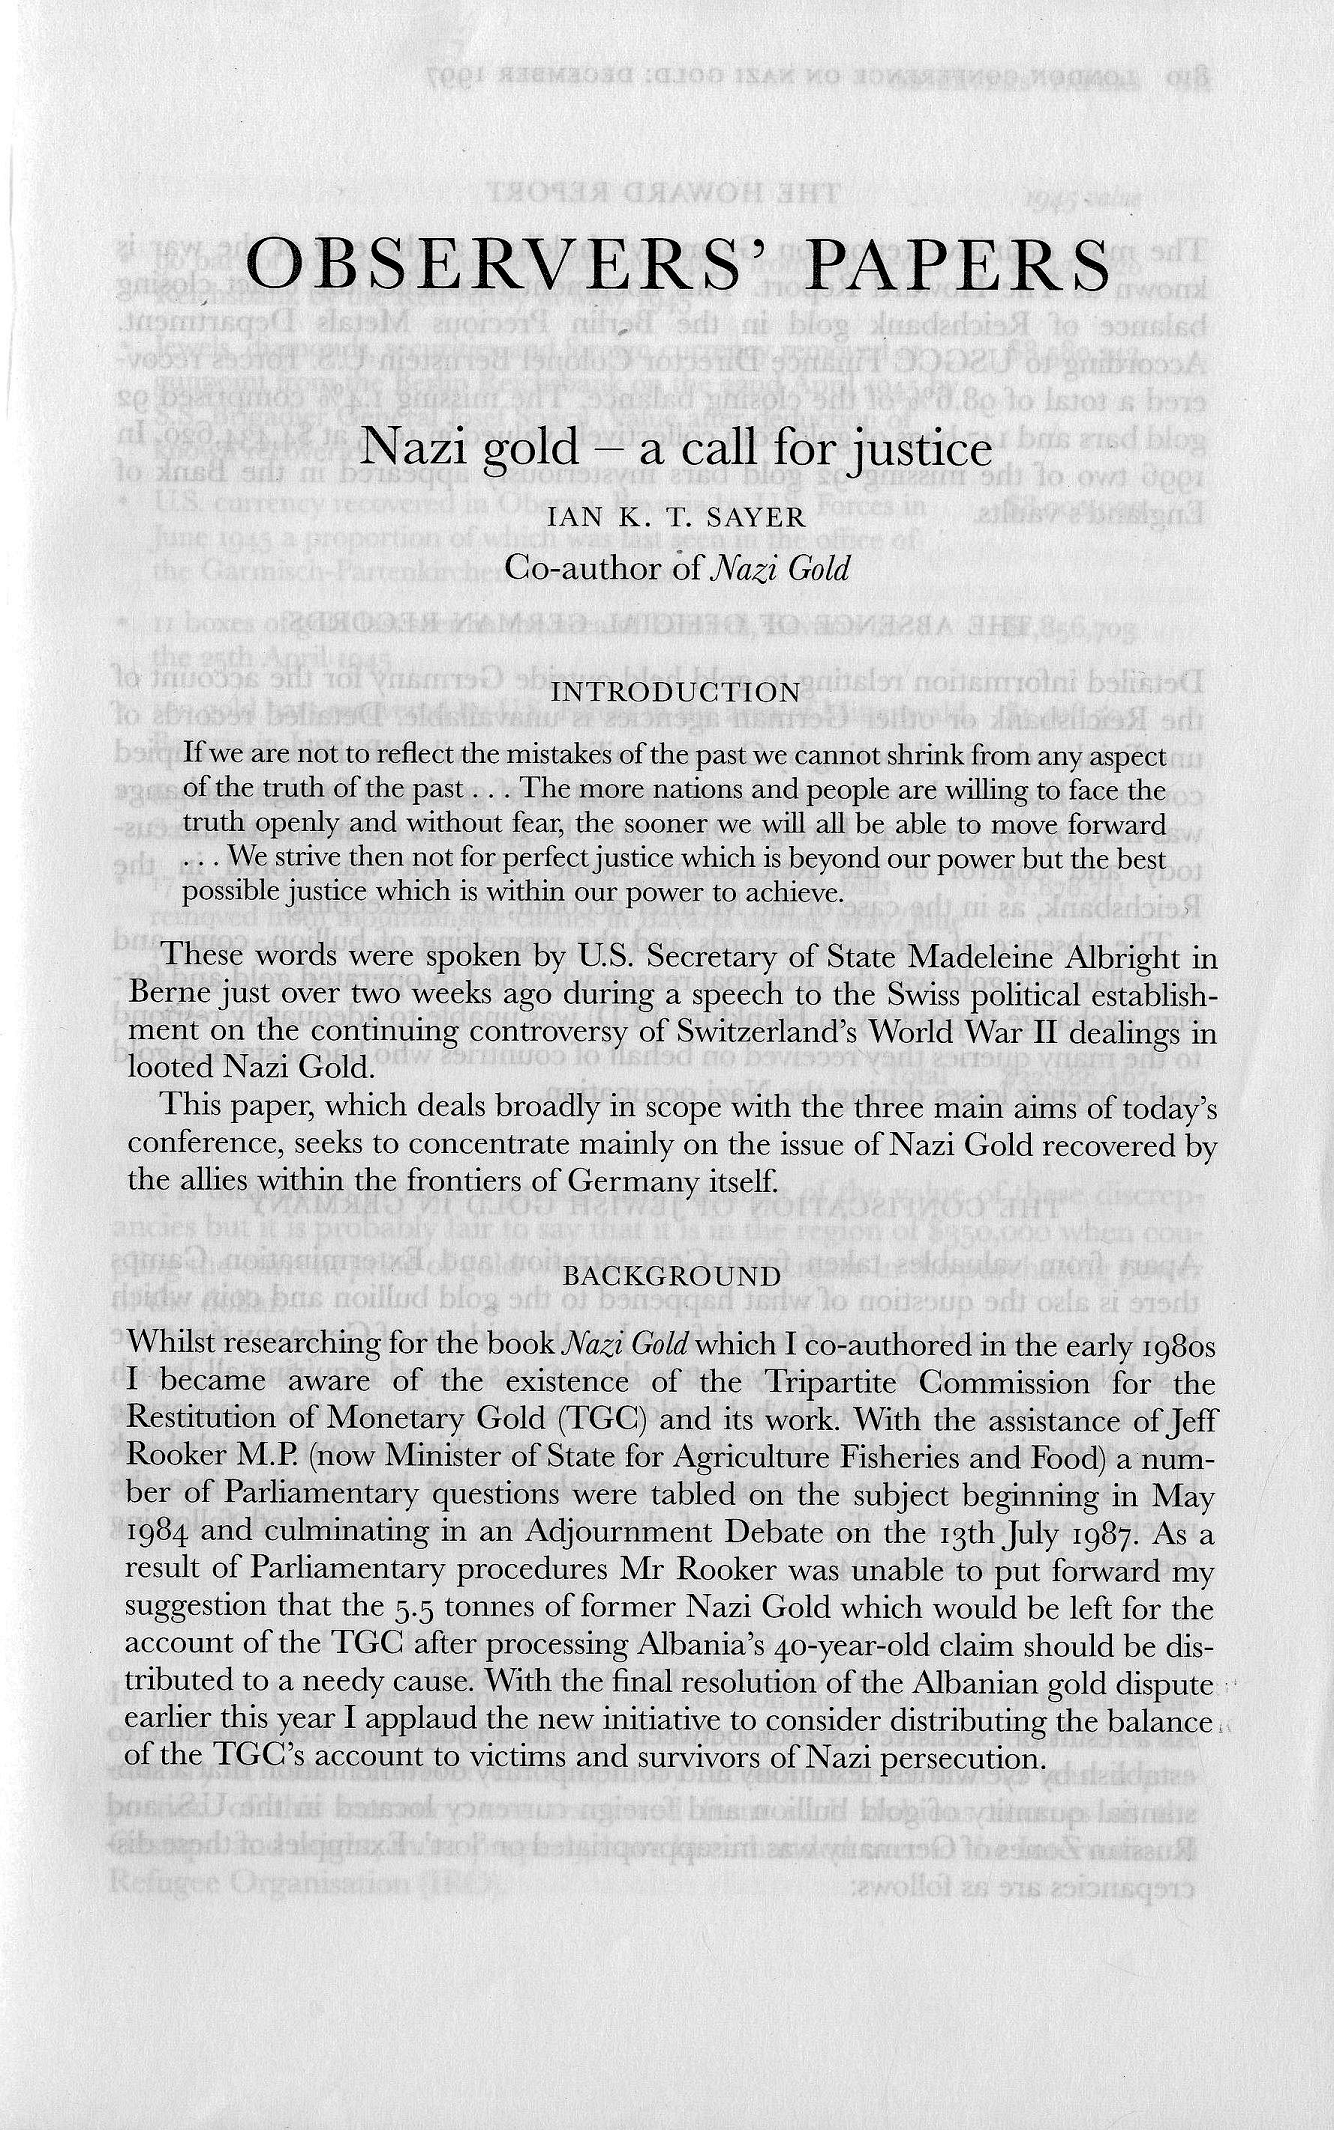 nazi-gold-london-conference-1997-observers-papers